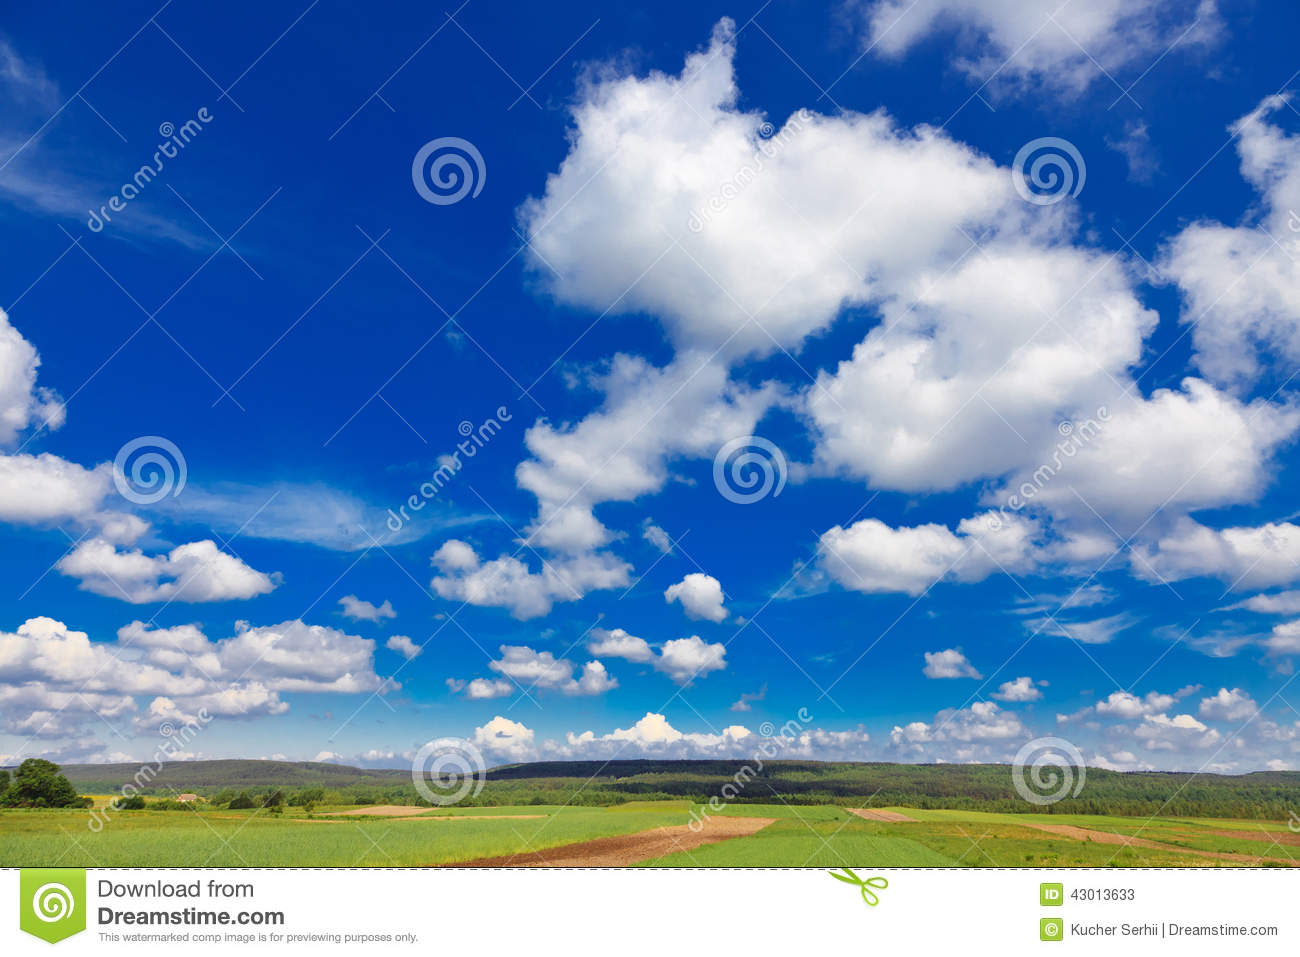 Rural landscape with blue sky and clouds